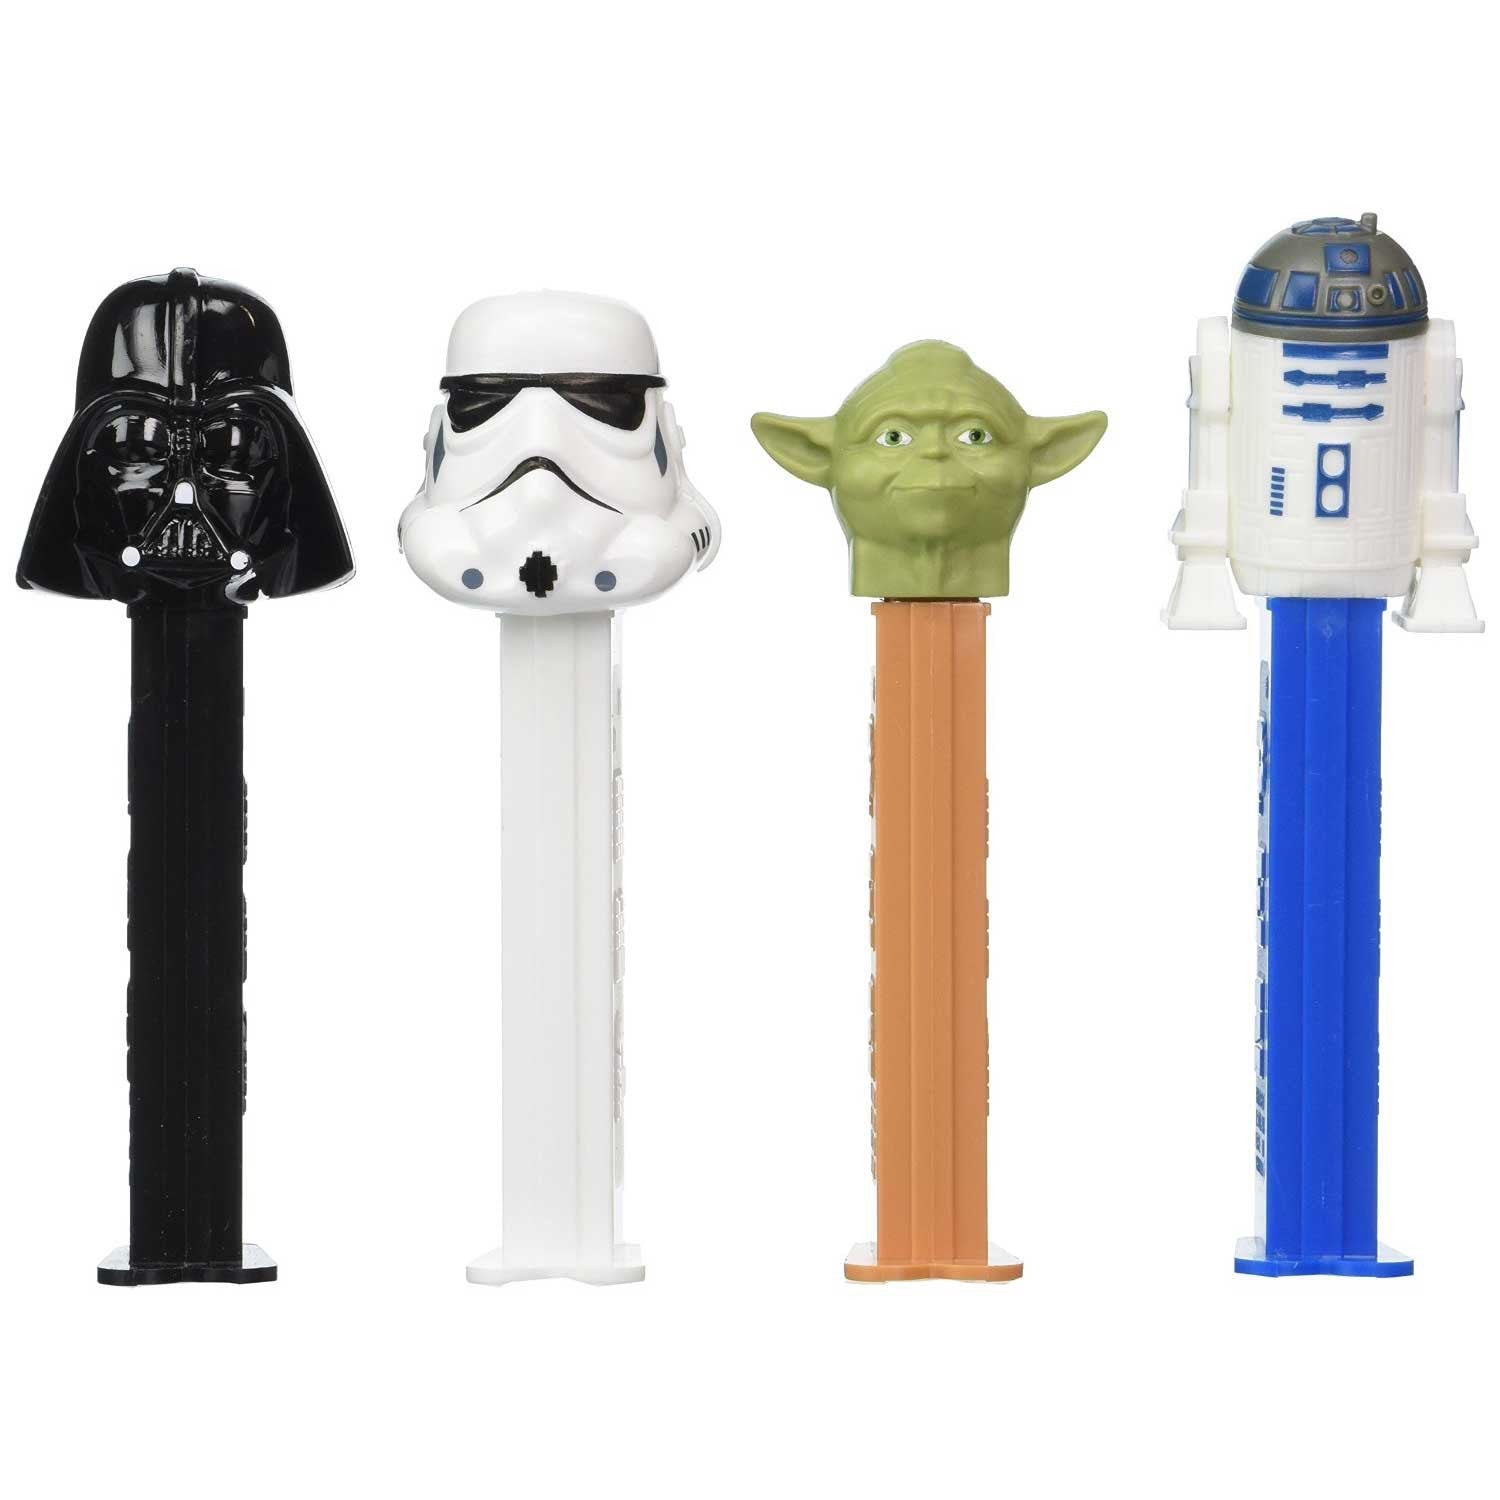 Star Wars Pez Dispensers - OddGifts.com